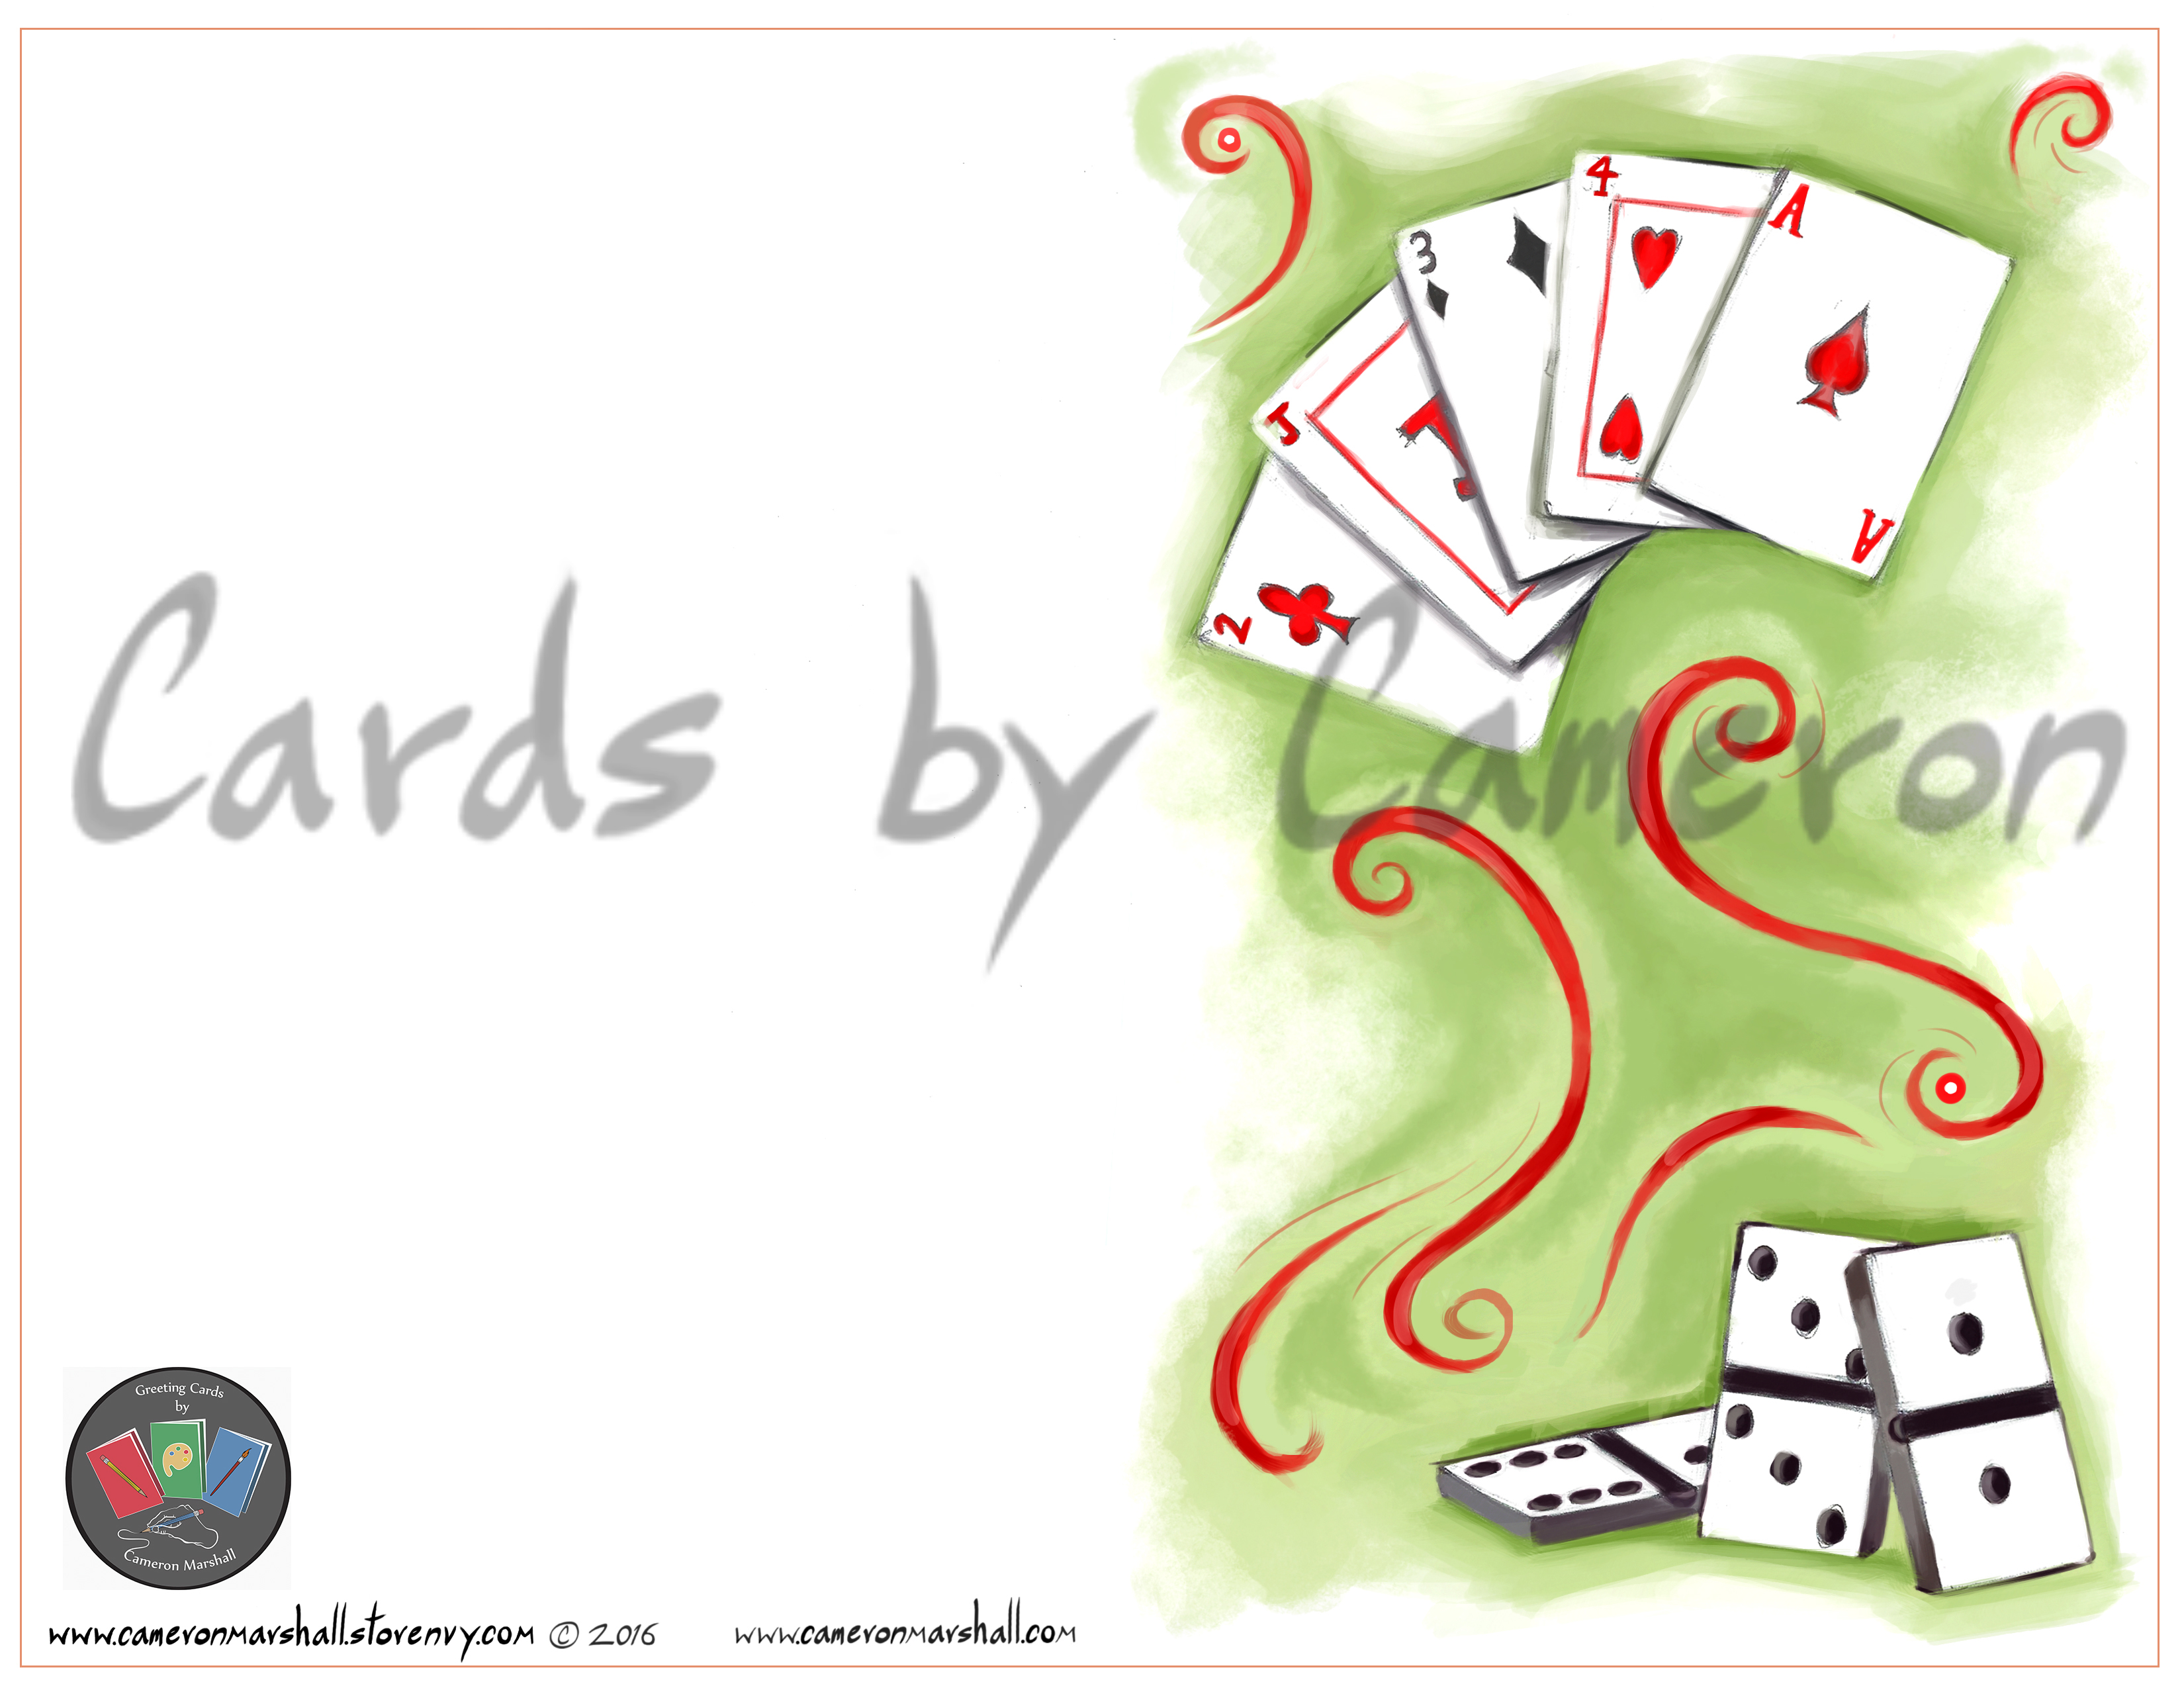 Cards & dominos · Cards by Cameron Marshall · Online Store Powered ...